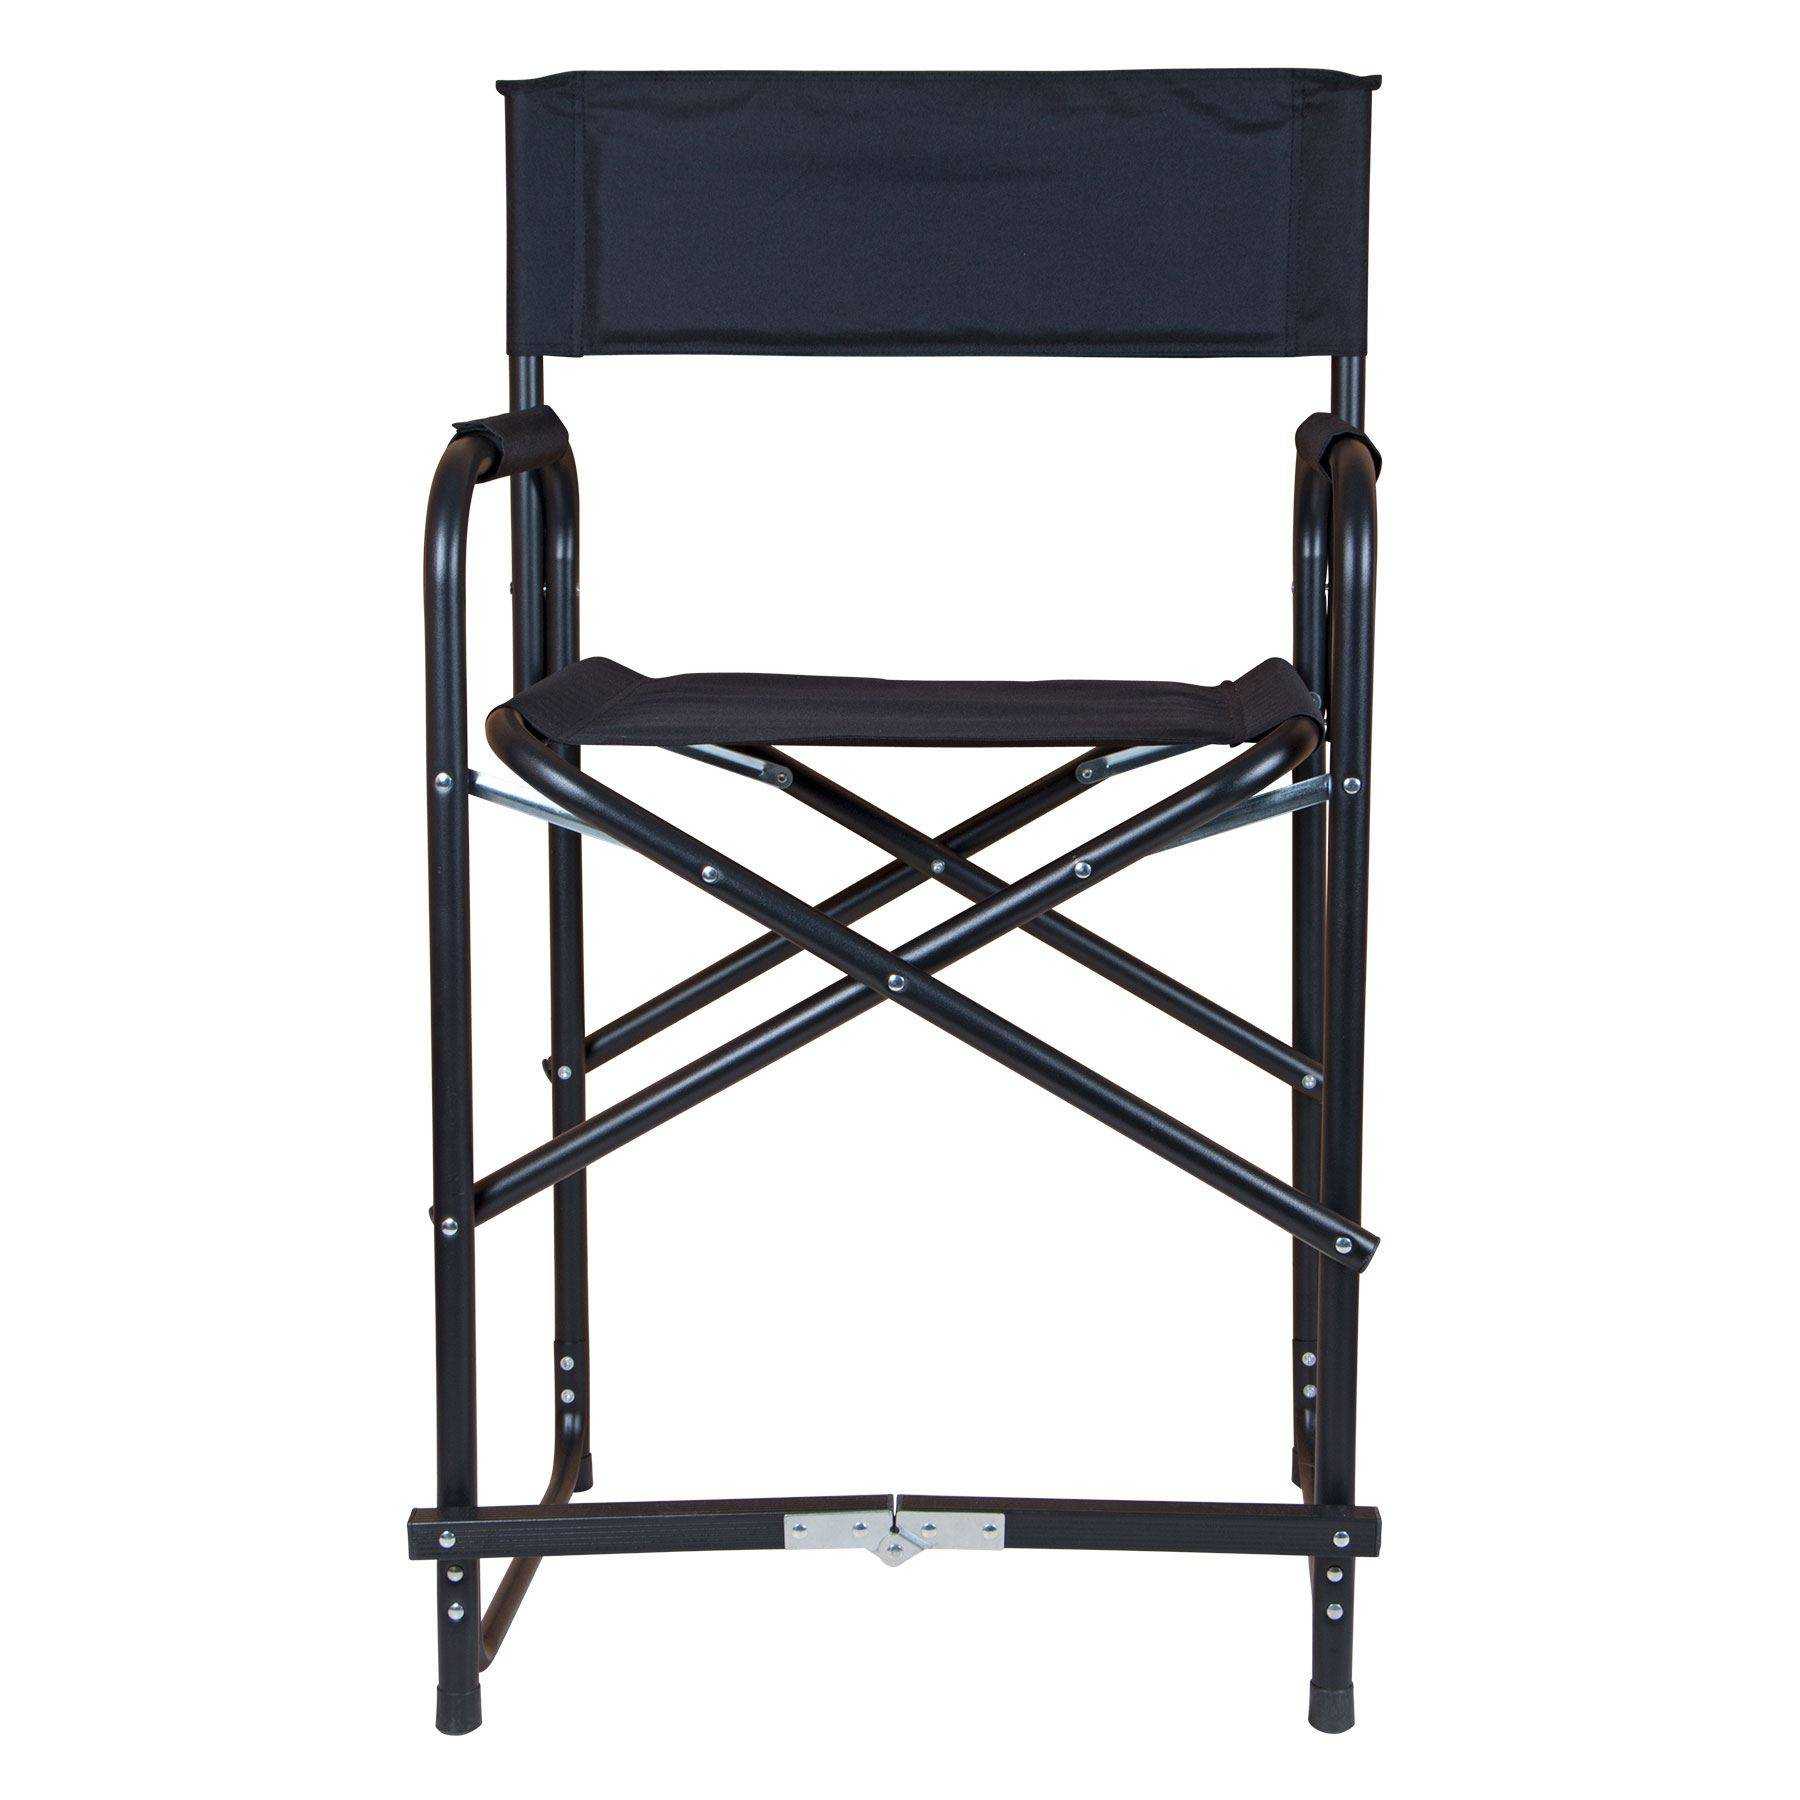 tall director chair abs rocket dura tech folding s in stable at schneider saddlery